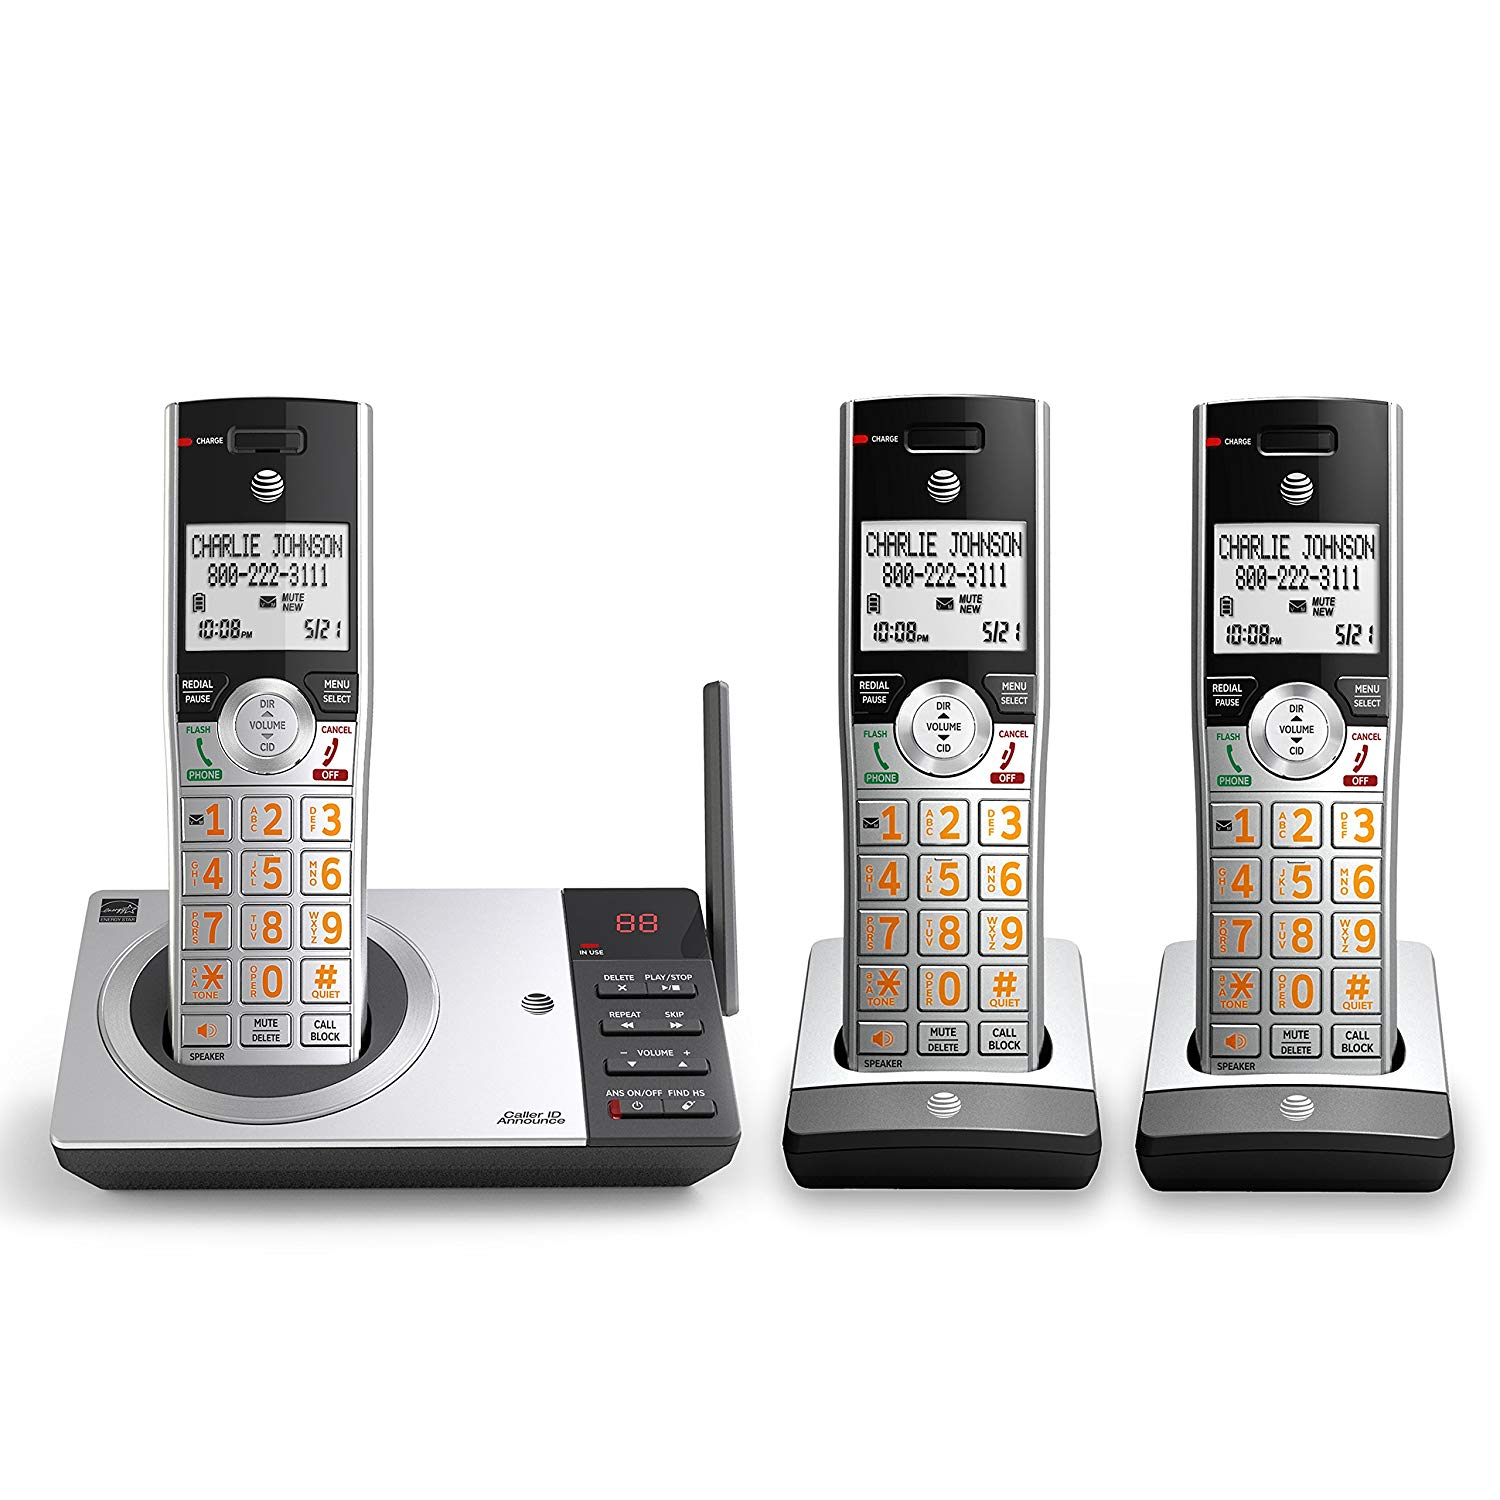 AT&T CL82307 DECT 6.0 Expandable Cordless Phone with Answering System & Smart Call Blocker, Silver/Black with 3 Handsets